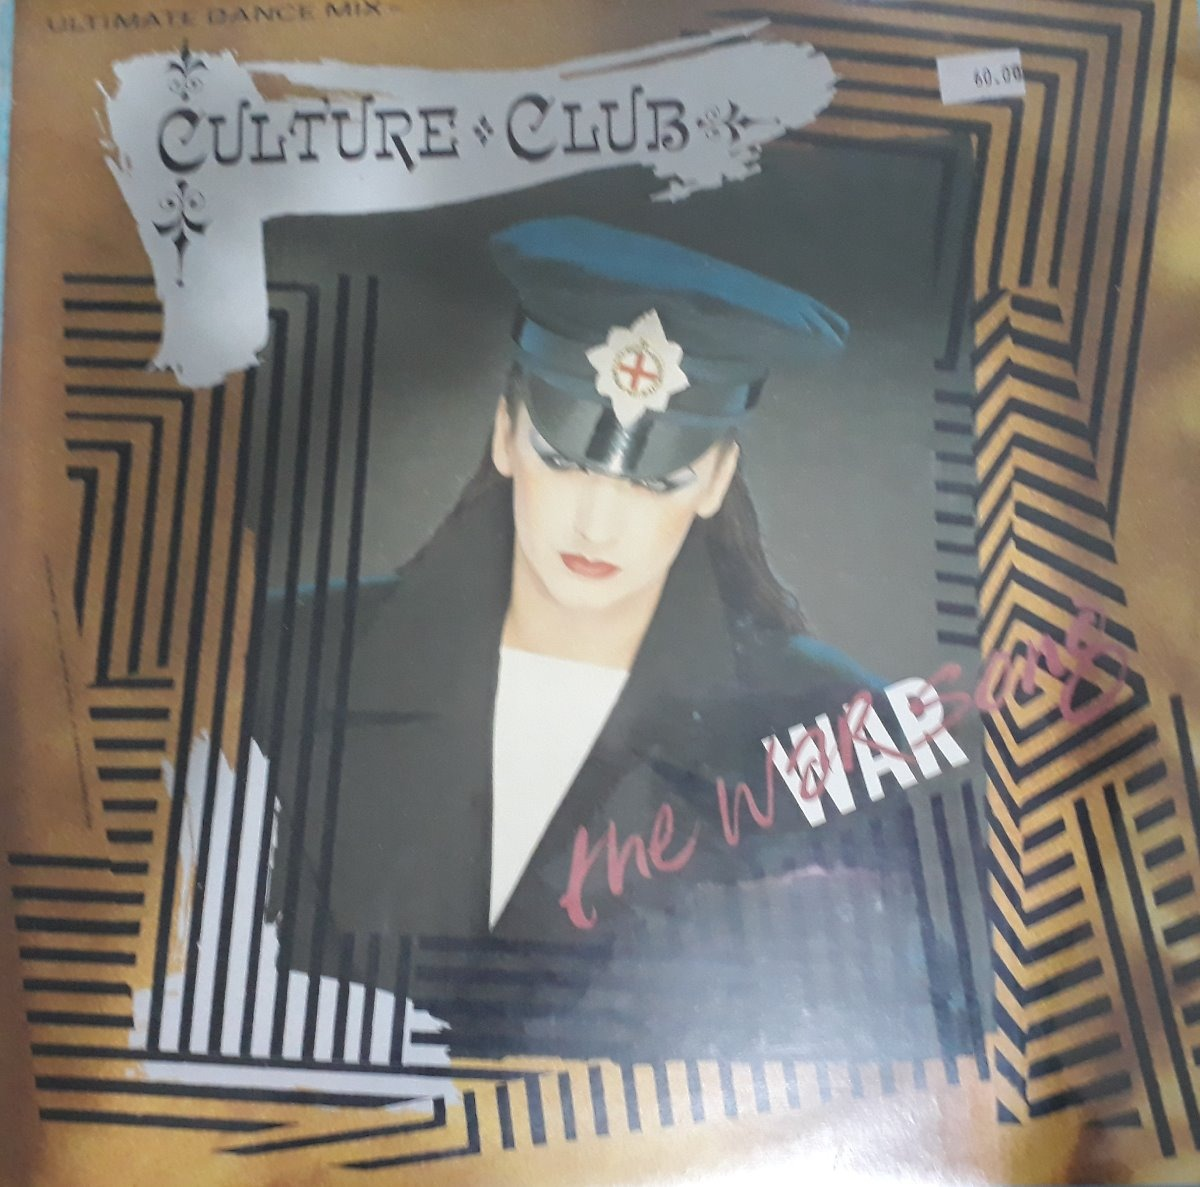 (12 Inch) Culture Club - The War Song (ultimate Dance Mix)